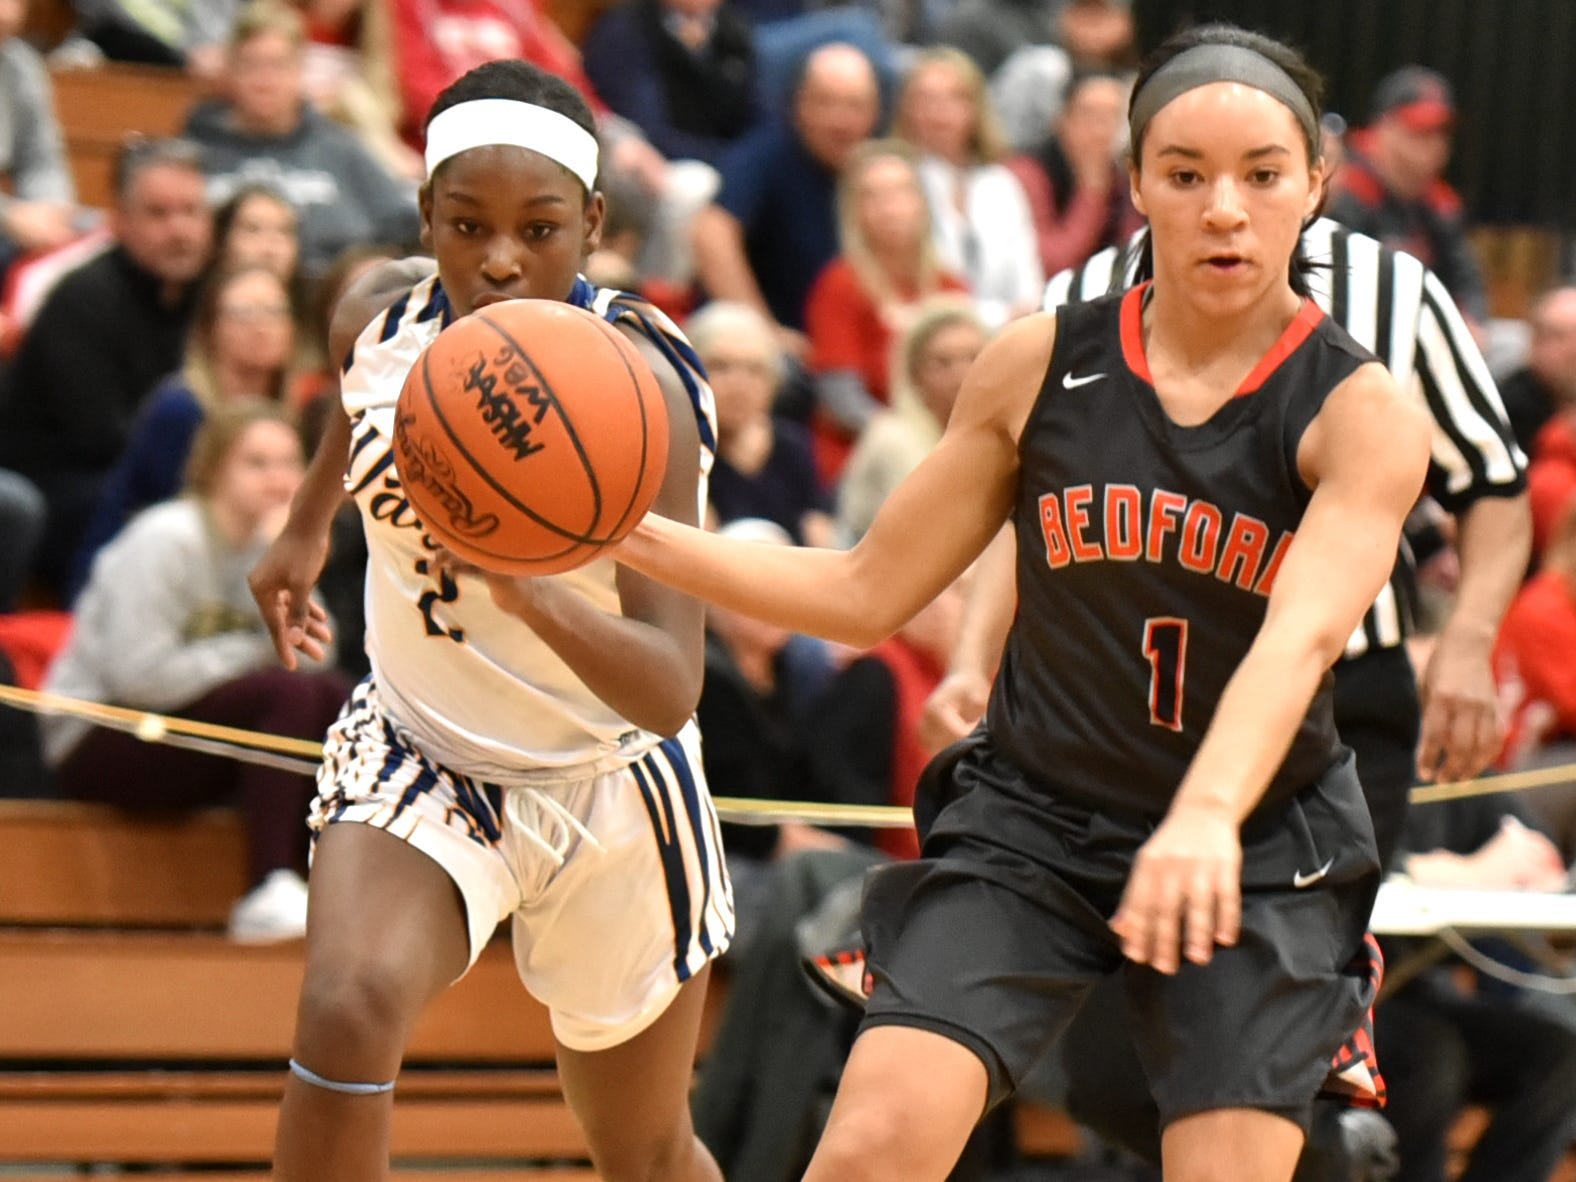 Wayne Memorial's Jordan Wright, left, keeps an eye on the ball that Temperance-Bedford's Selena Sandoval is dribbling. The Zebras stole an awful lot of balls from the team from Temperance.